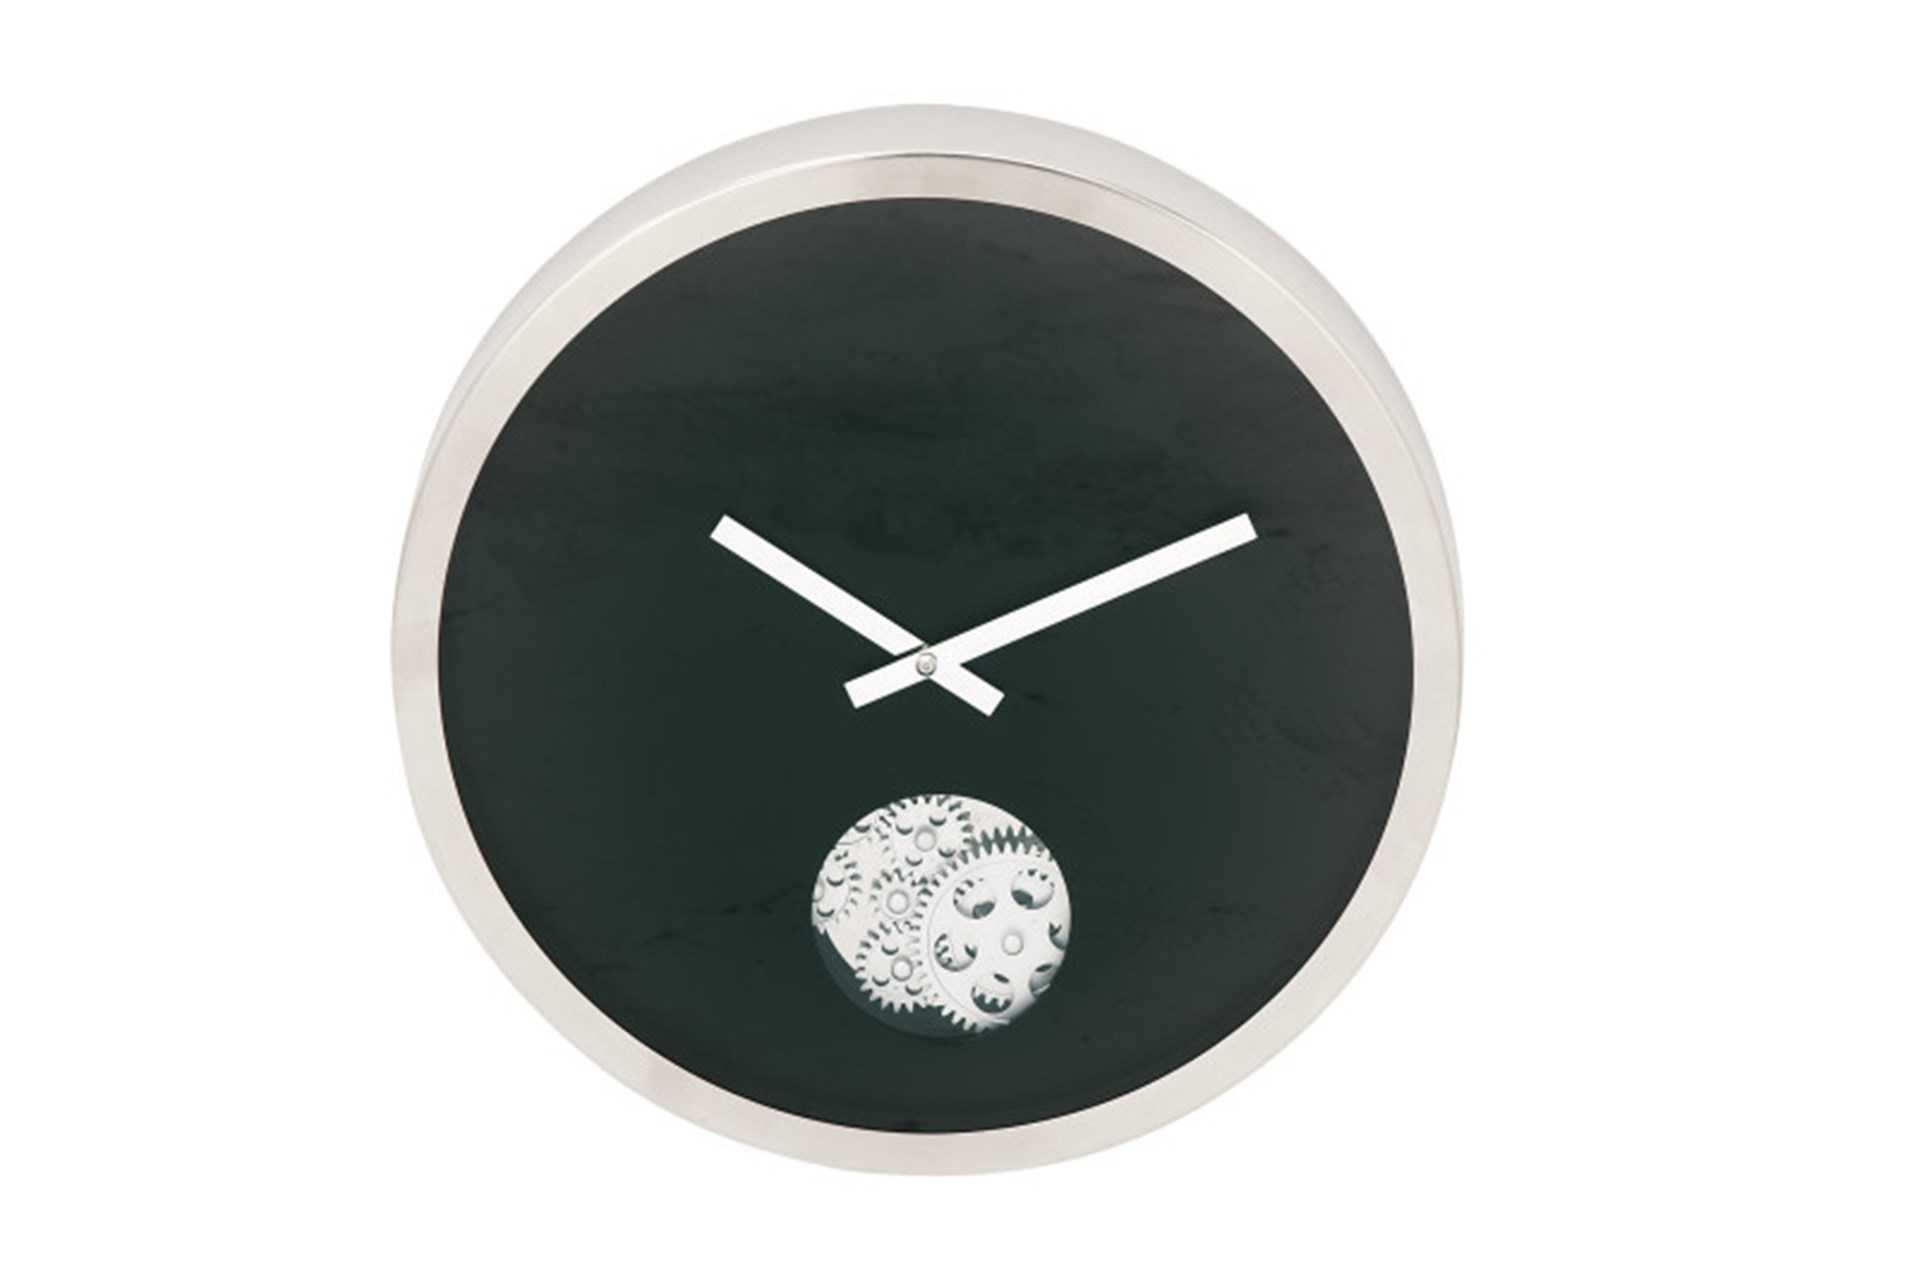 Steel Black Small Gear Wall Clock Qty 1 Has Been Successfully Added To Your Cart